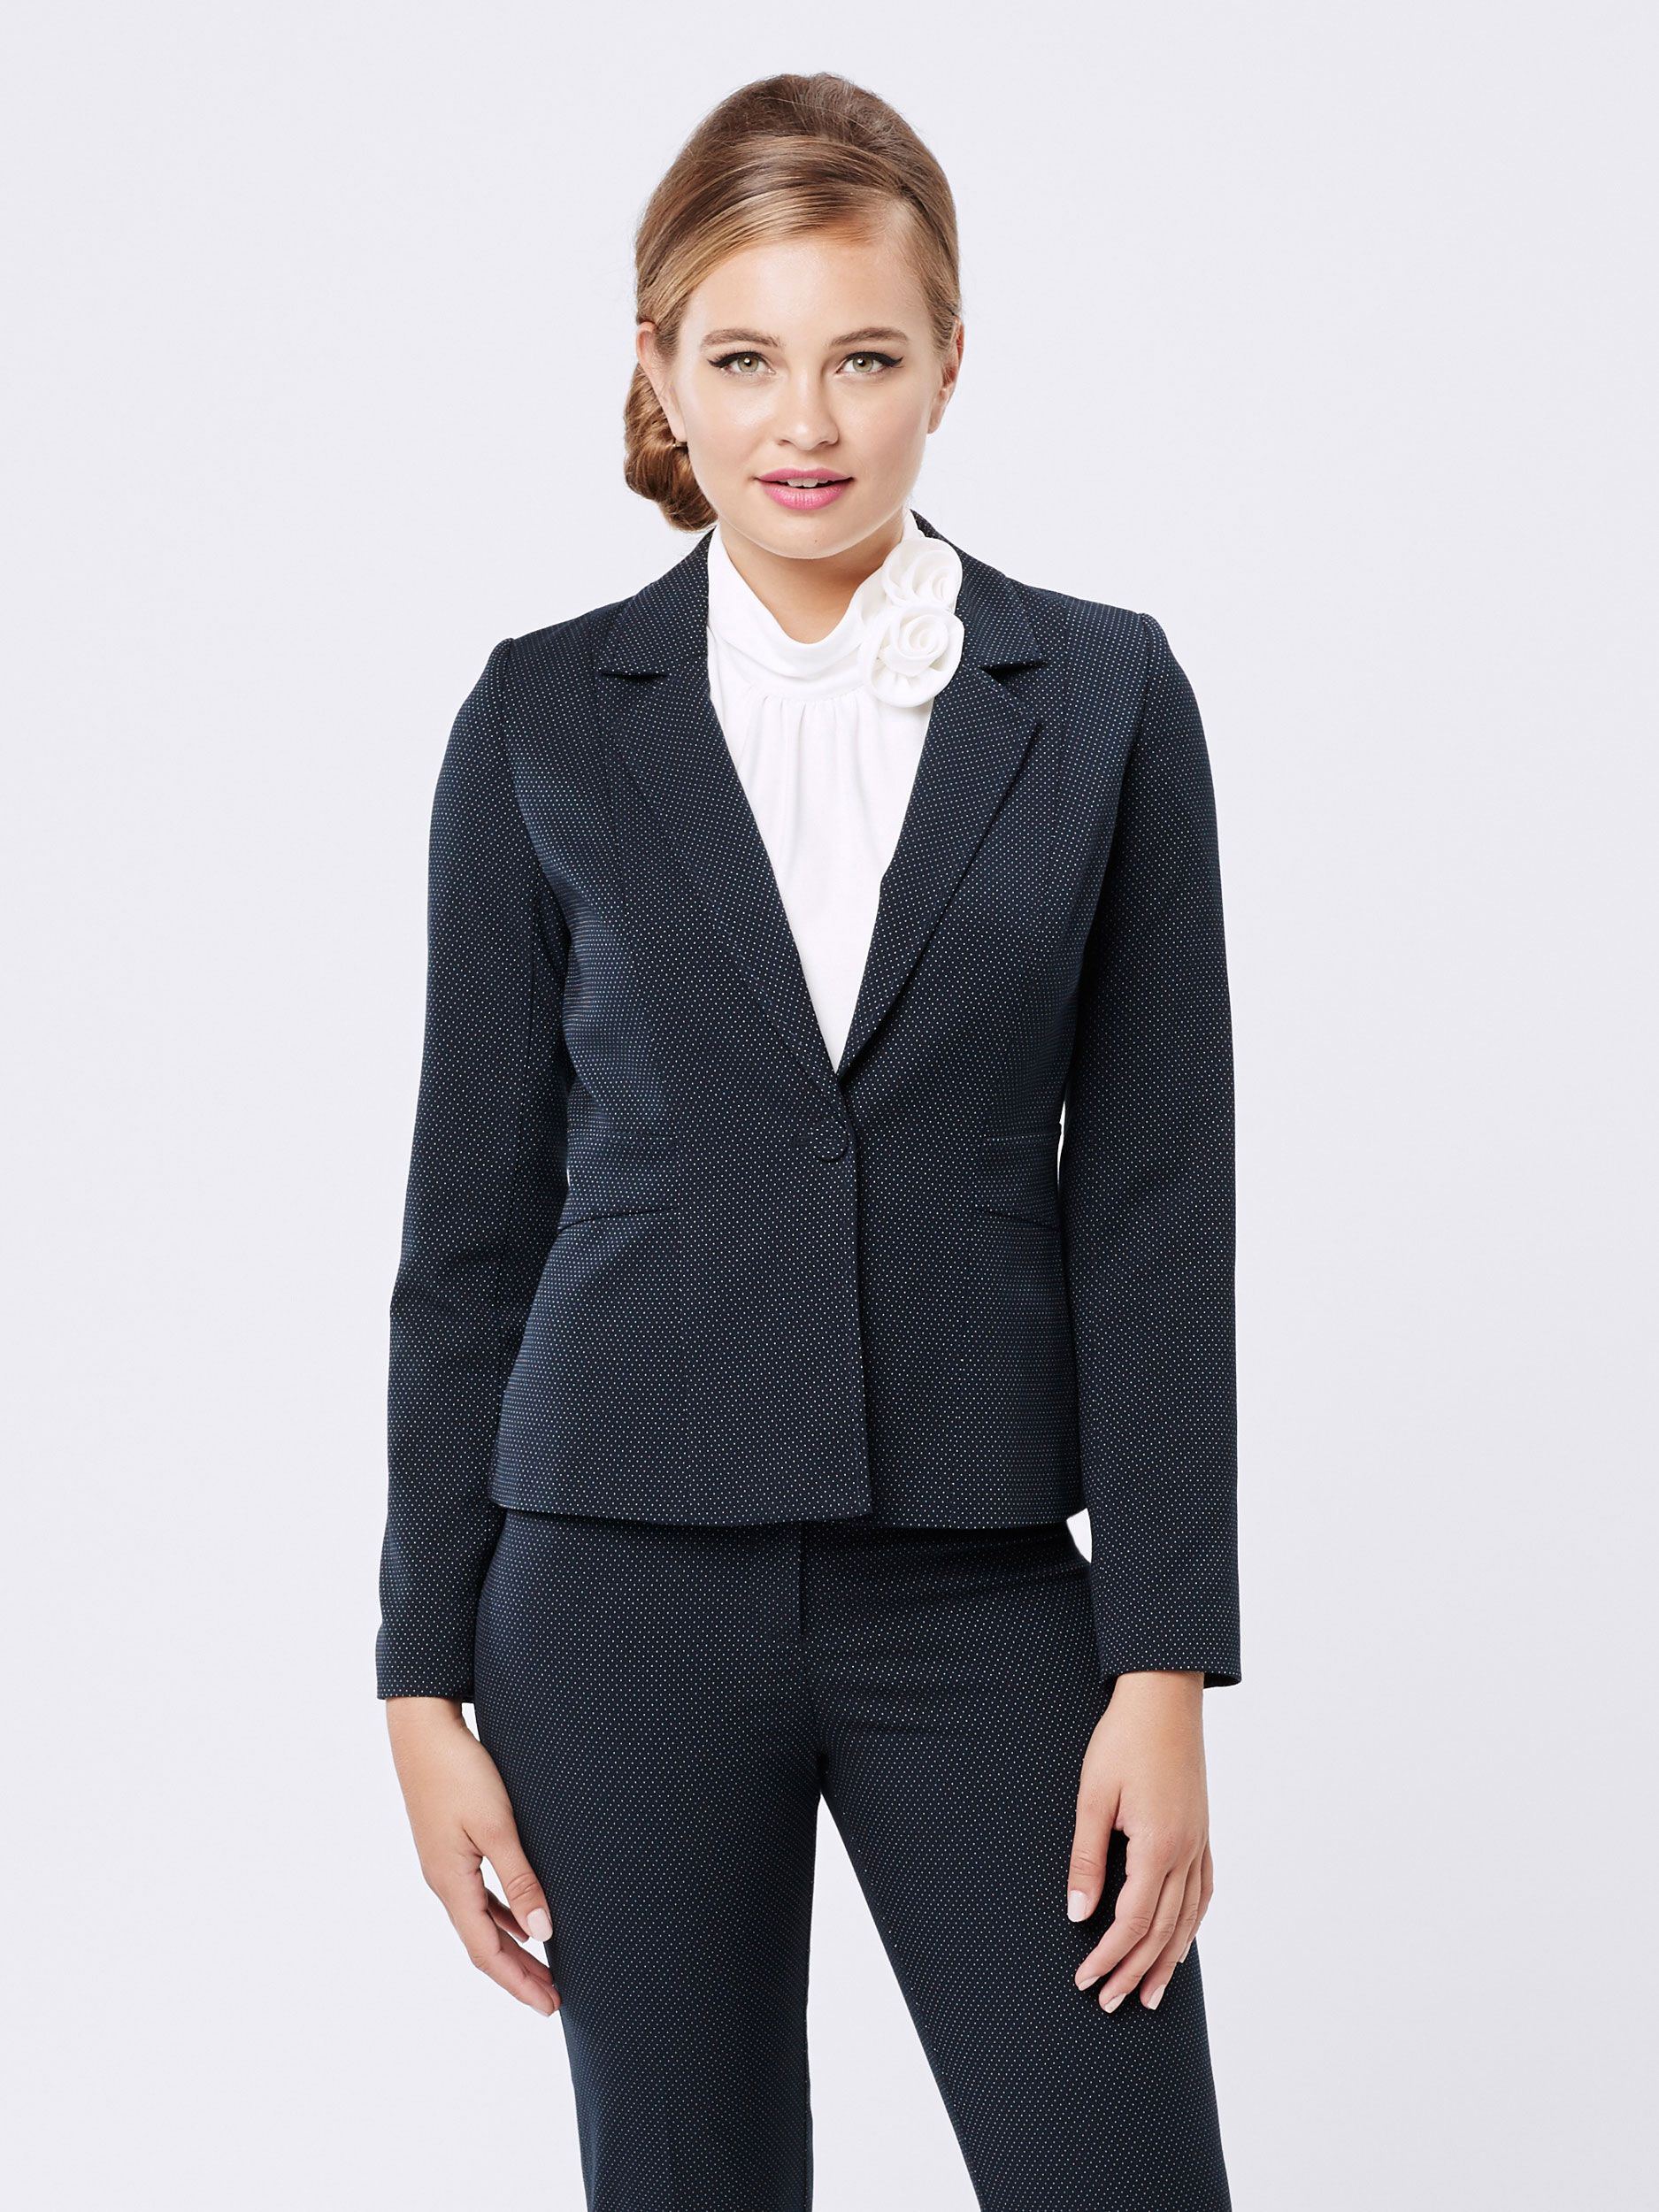 trinny jacket career review collection trinny jacket career review